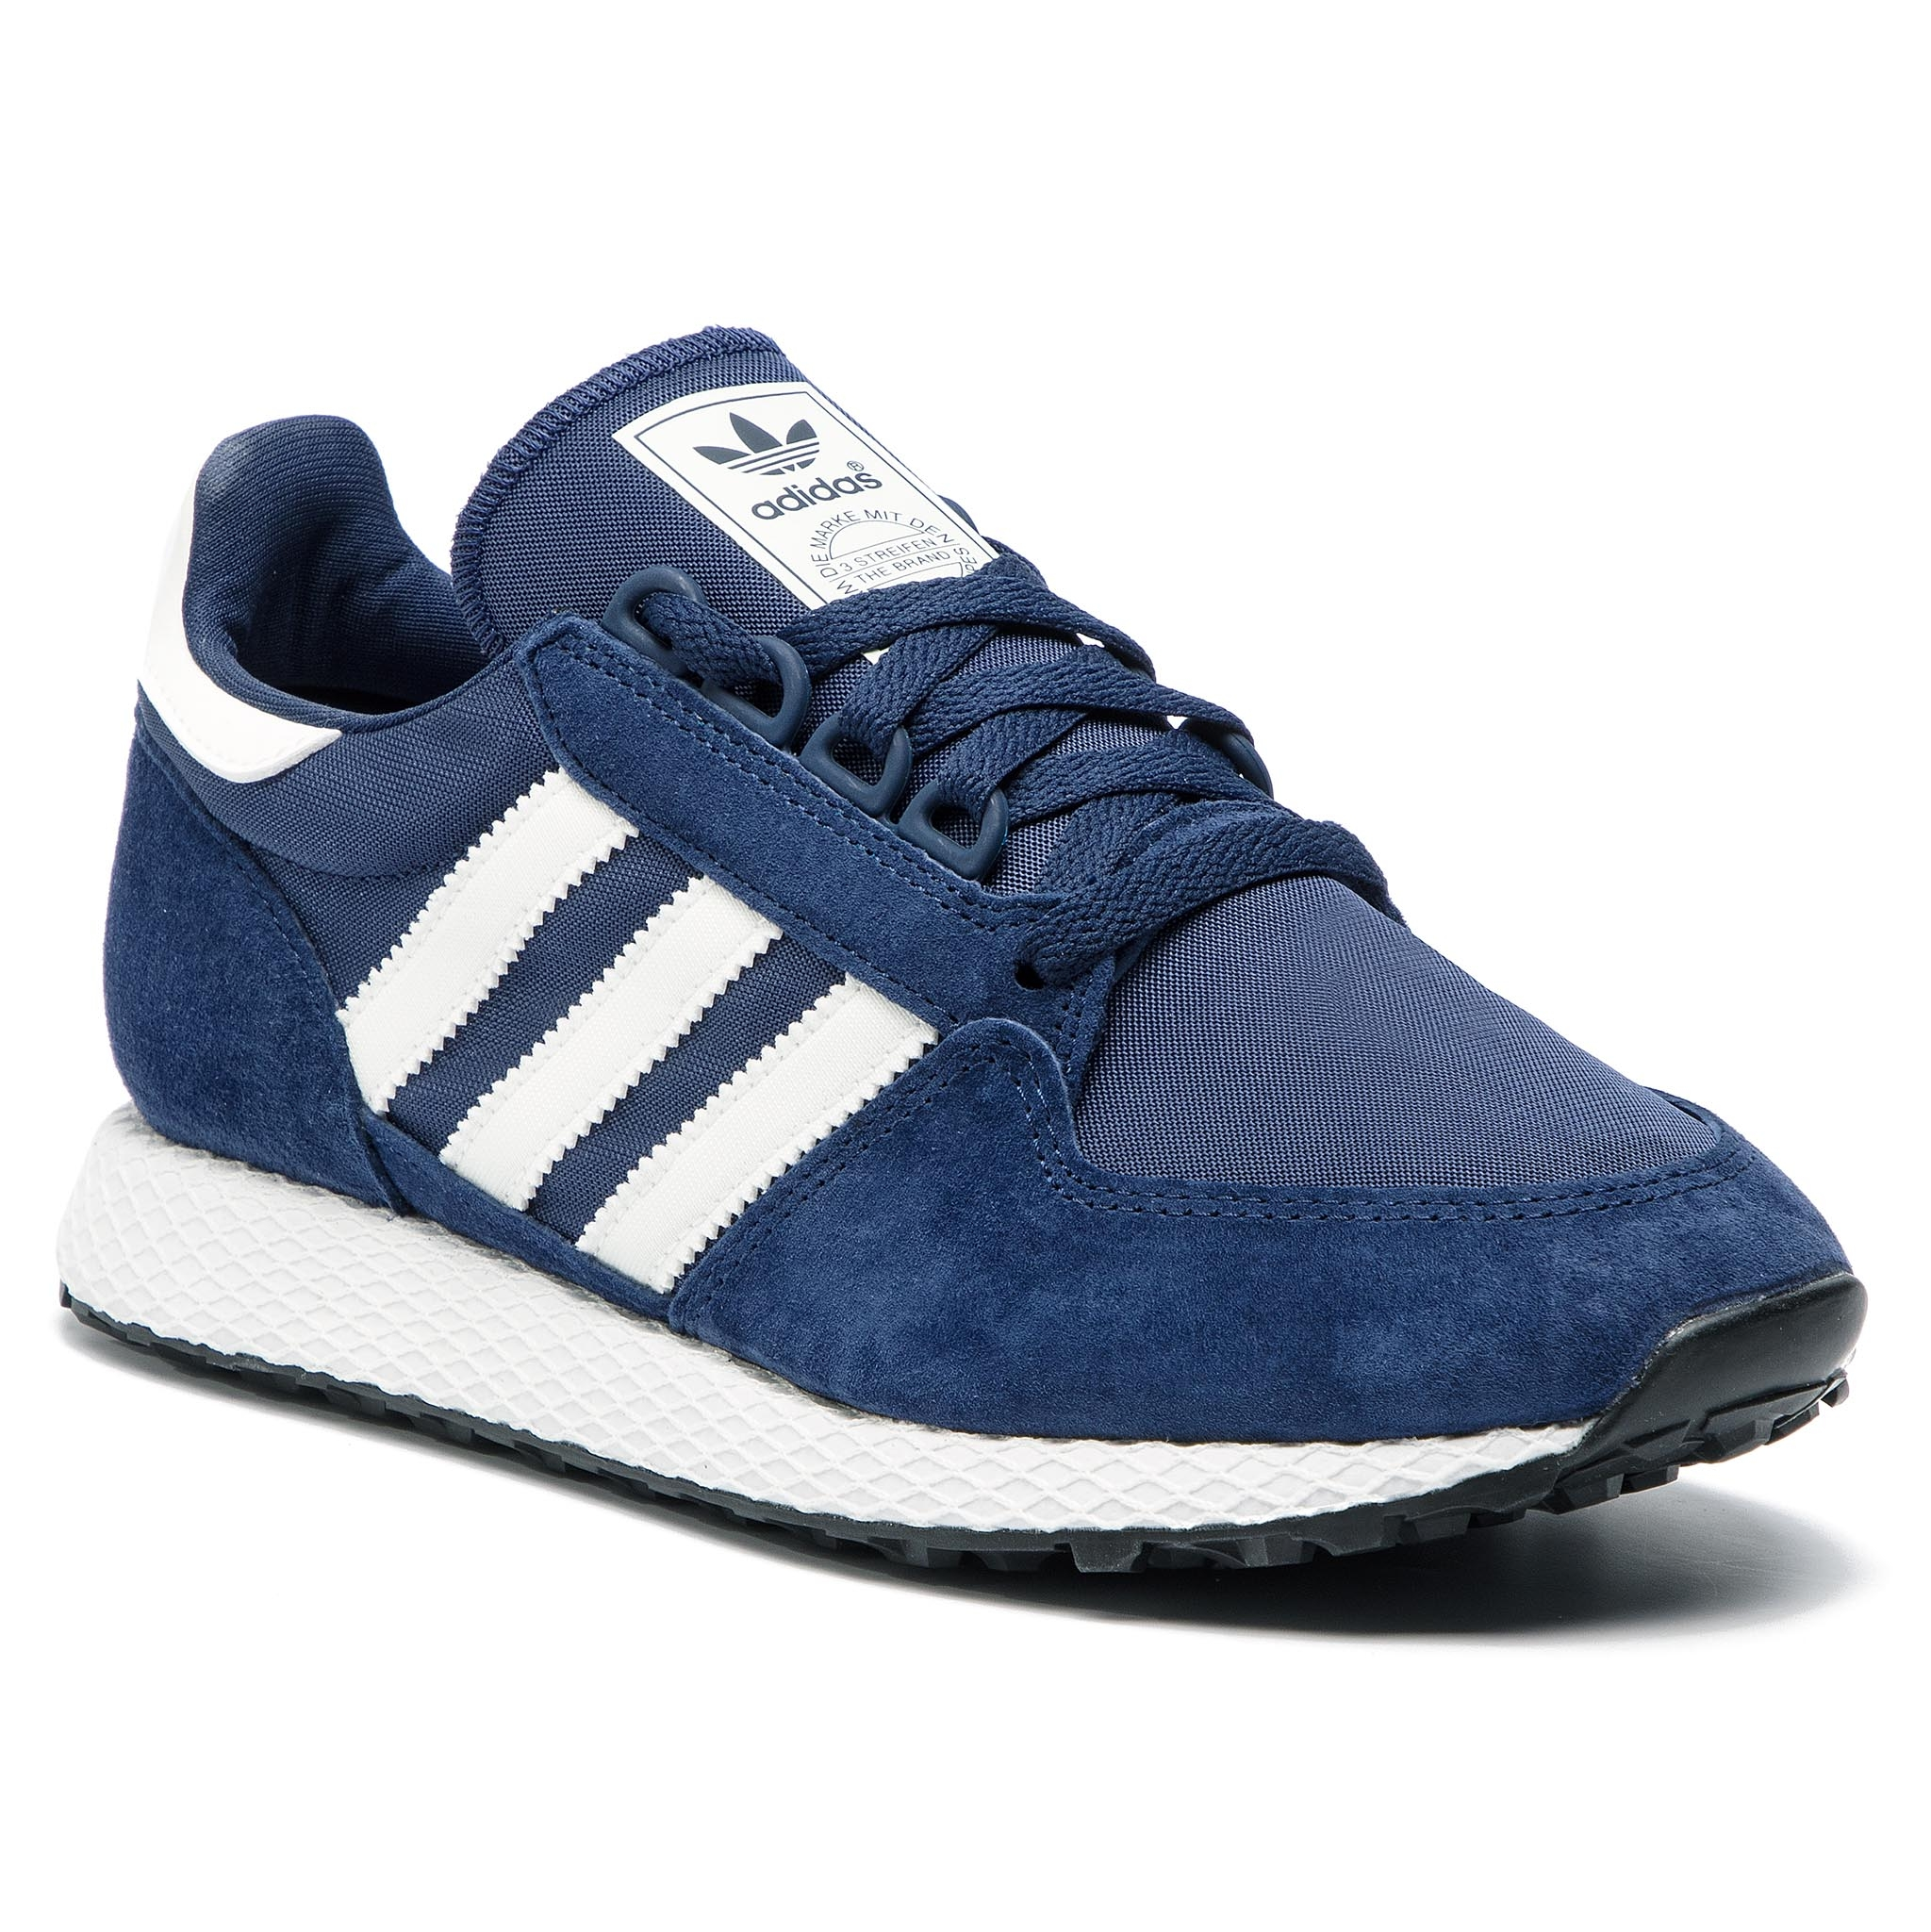 521470bcb9540 Shoes adidas - Forest Grove J F34325 Cleora Ftwwht Cleora - Sneakers ...